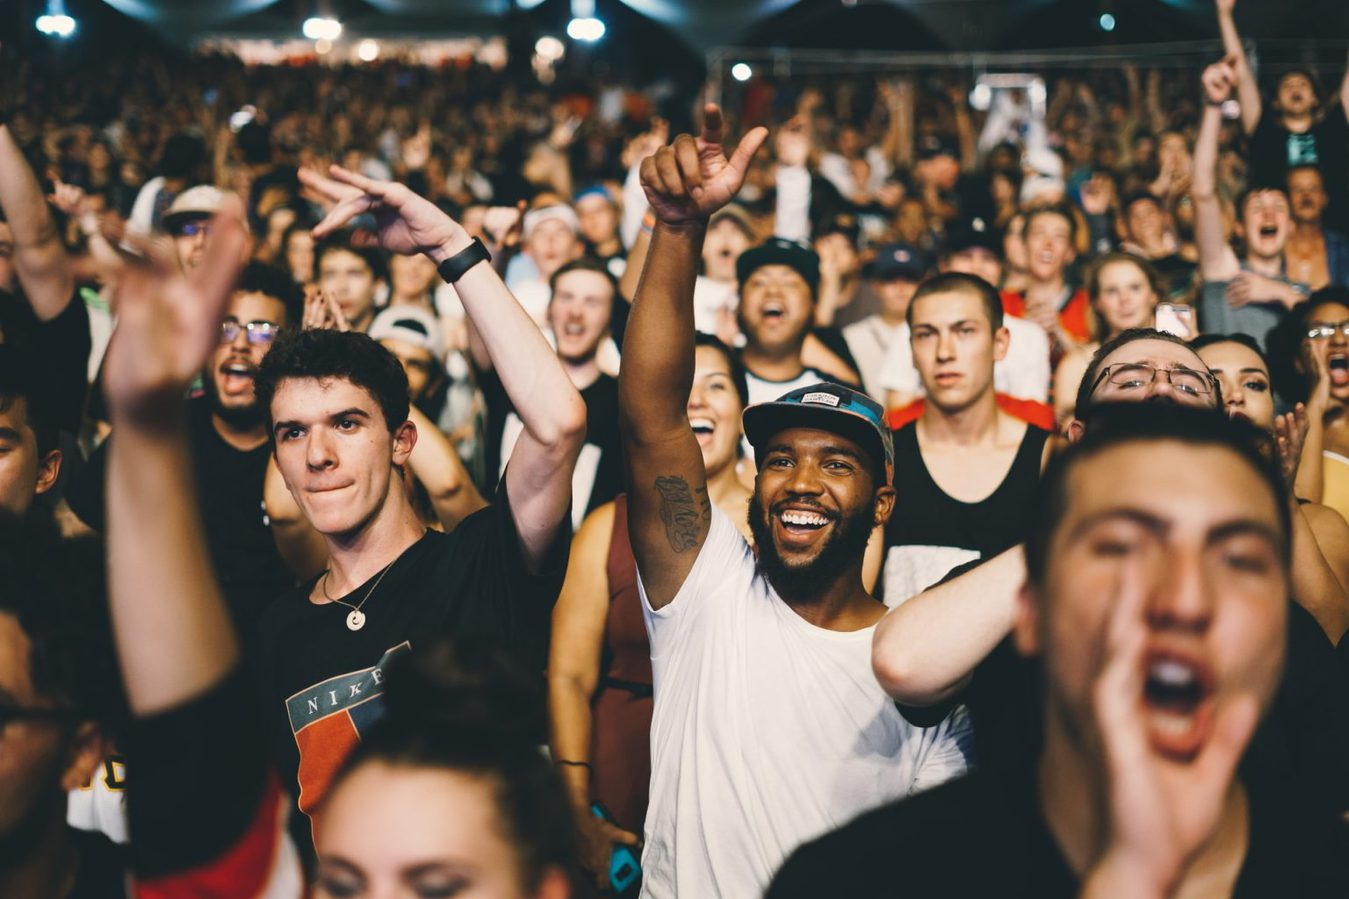 Crowd of cheering people at an event